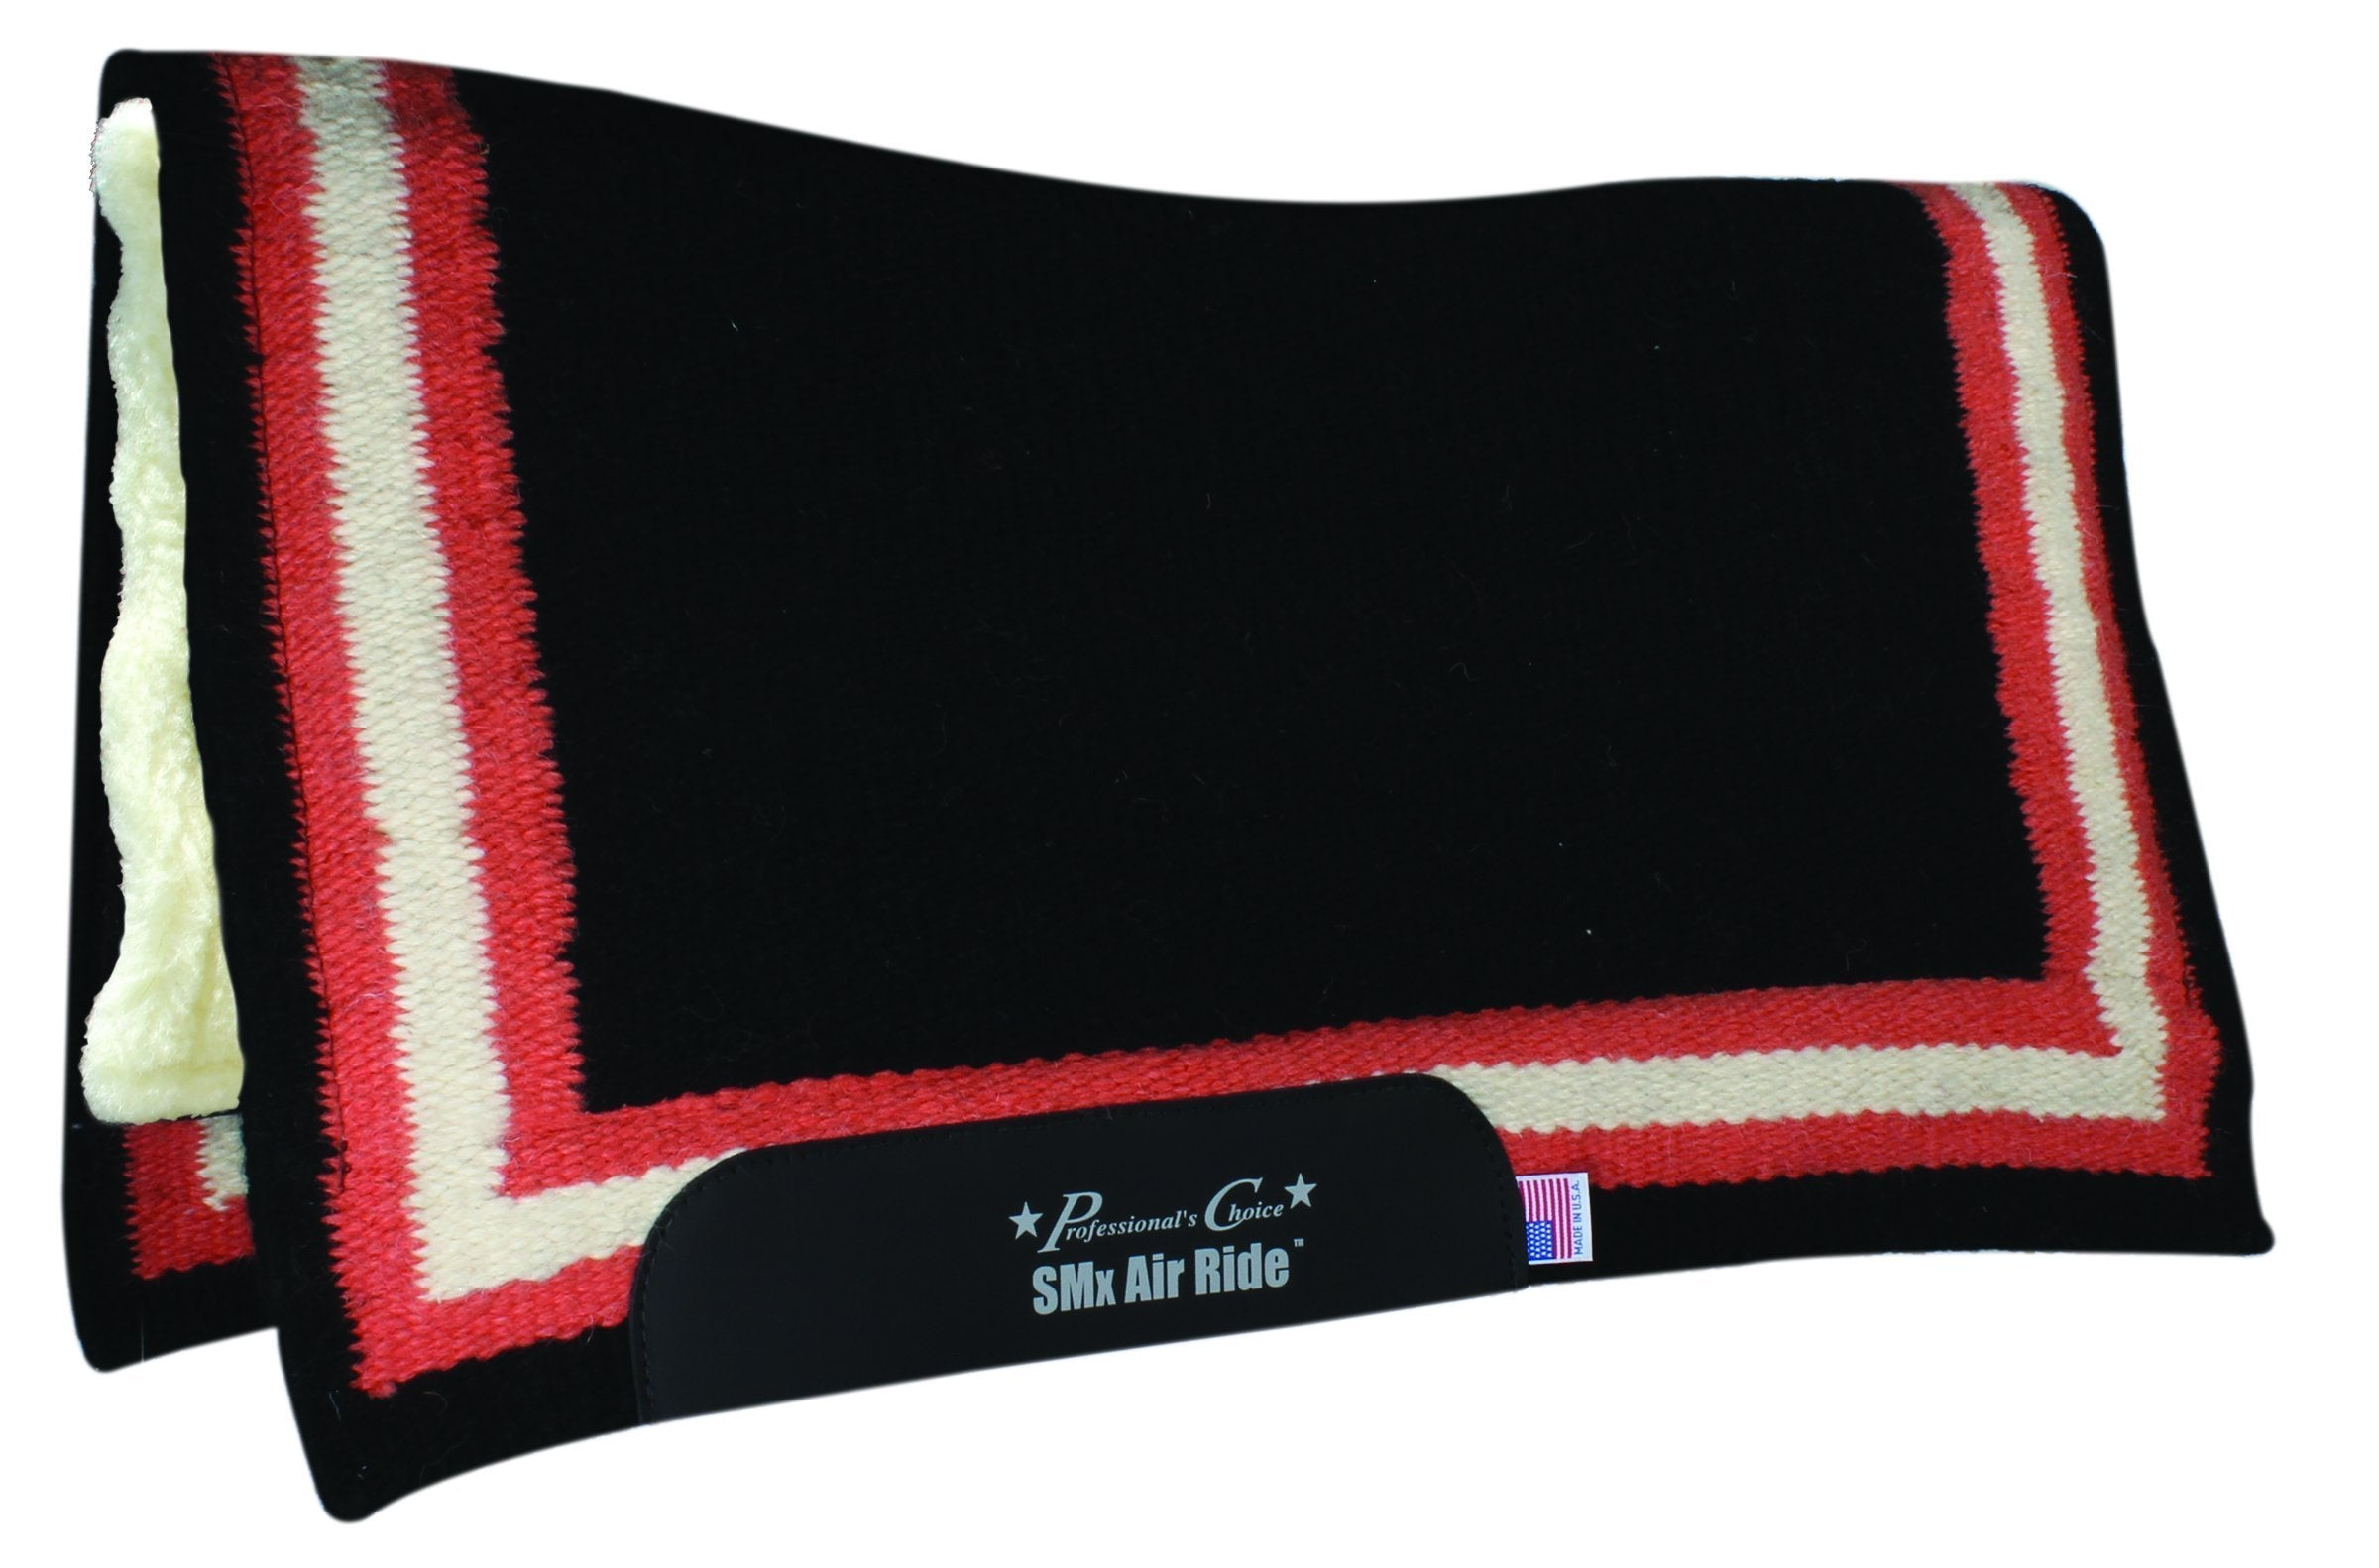 Professional's Choice Border SMX Air Ride Pad - Animal Health Express